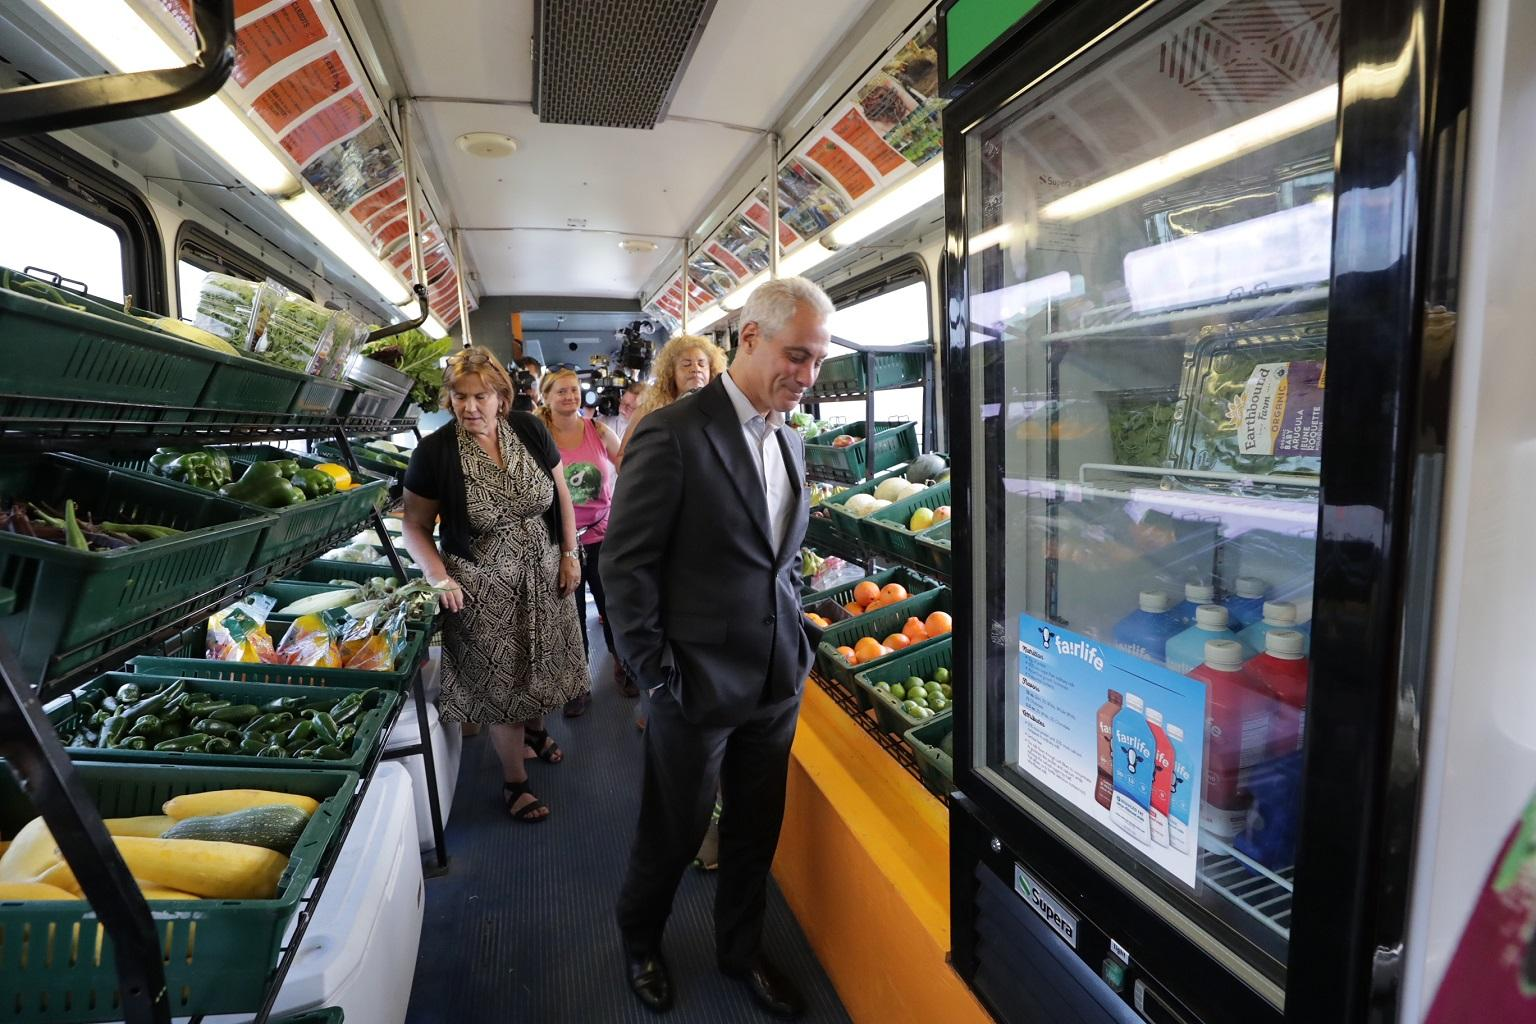 Mayor Rahm Emanuel tours a mobile market operated by the Urban Growers Collective during an event on Aug. 22, 2018. (Courtesy City of Chicago)